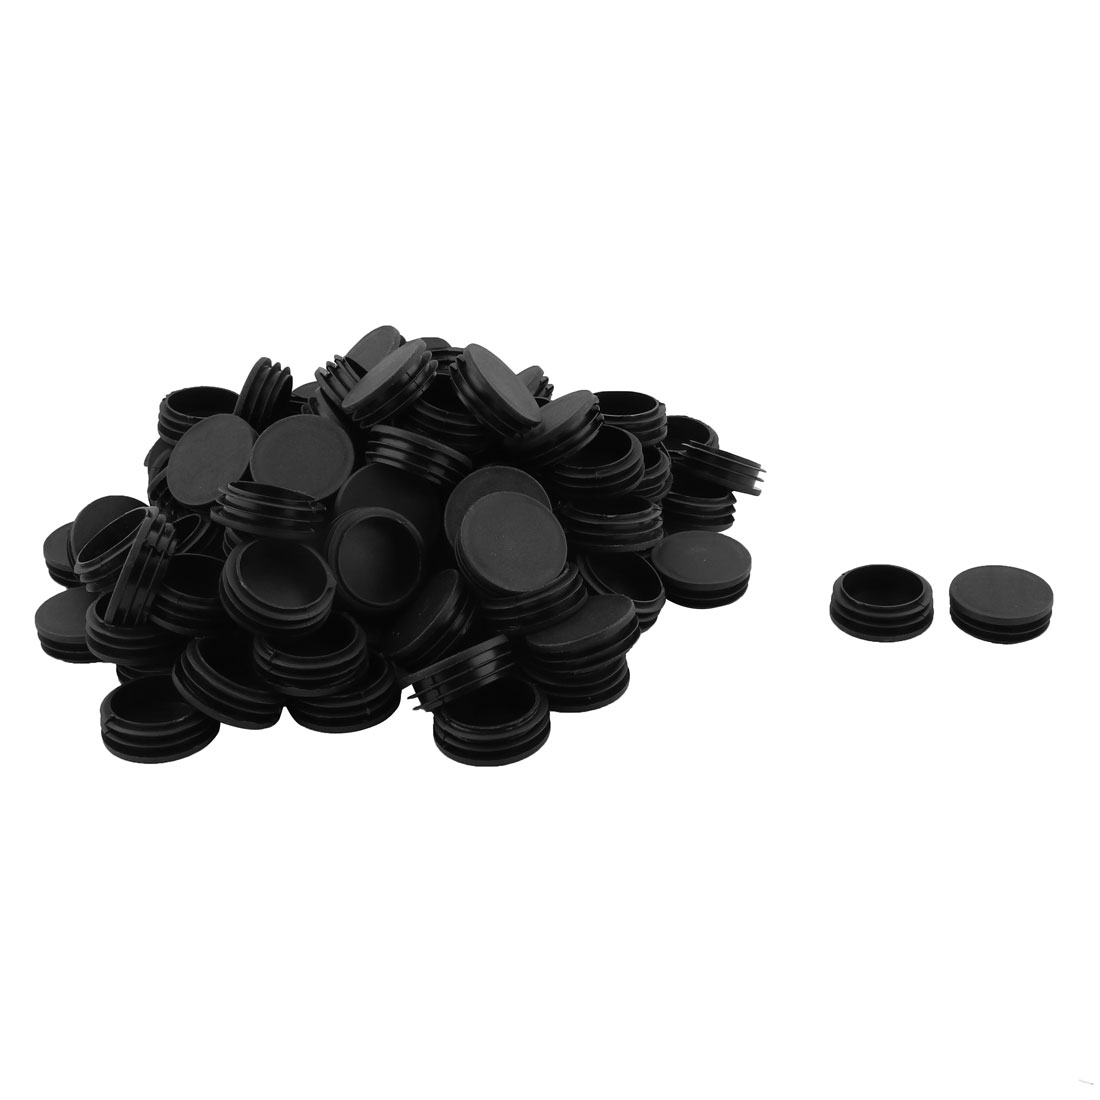 Home Office Plastic Round Shaped Furniture Table Chair Leg Feet Tube Insert Black 100pcs